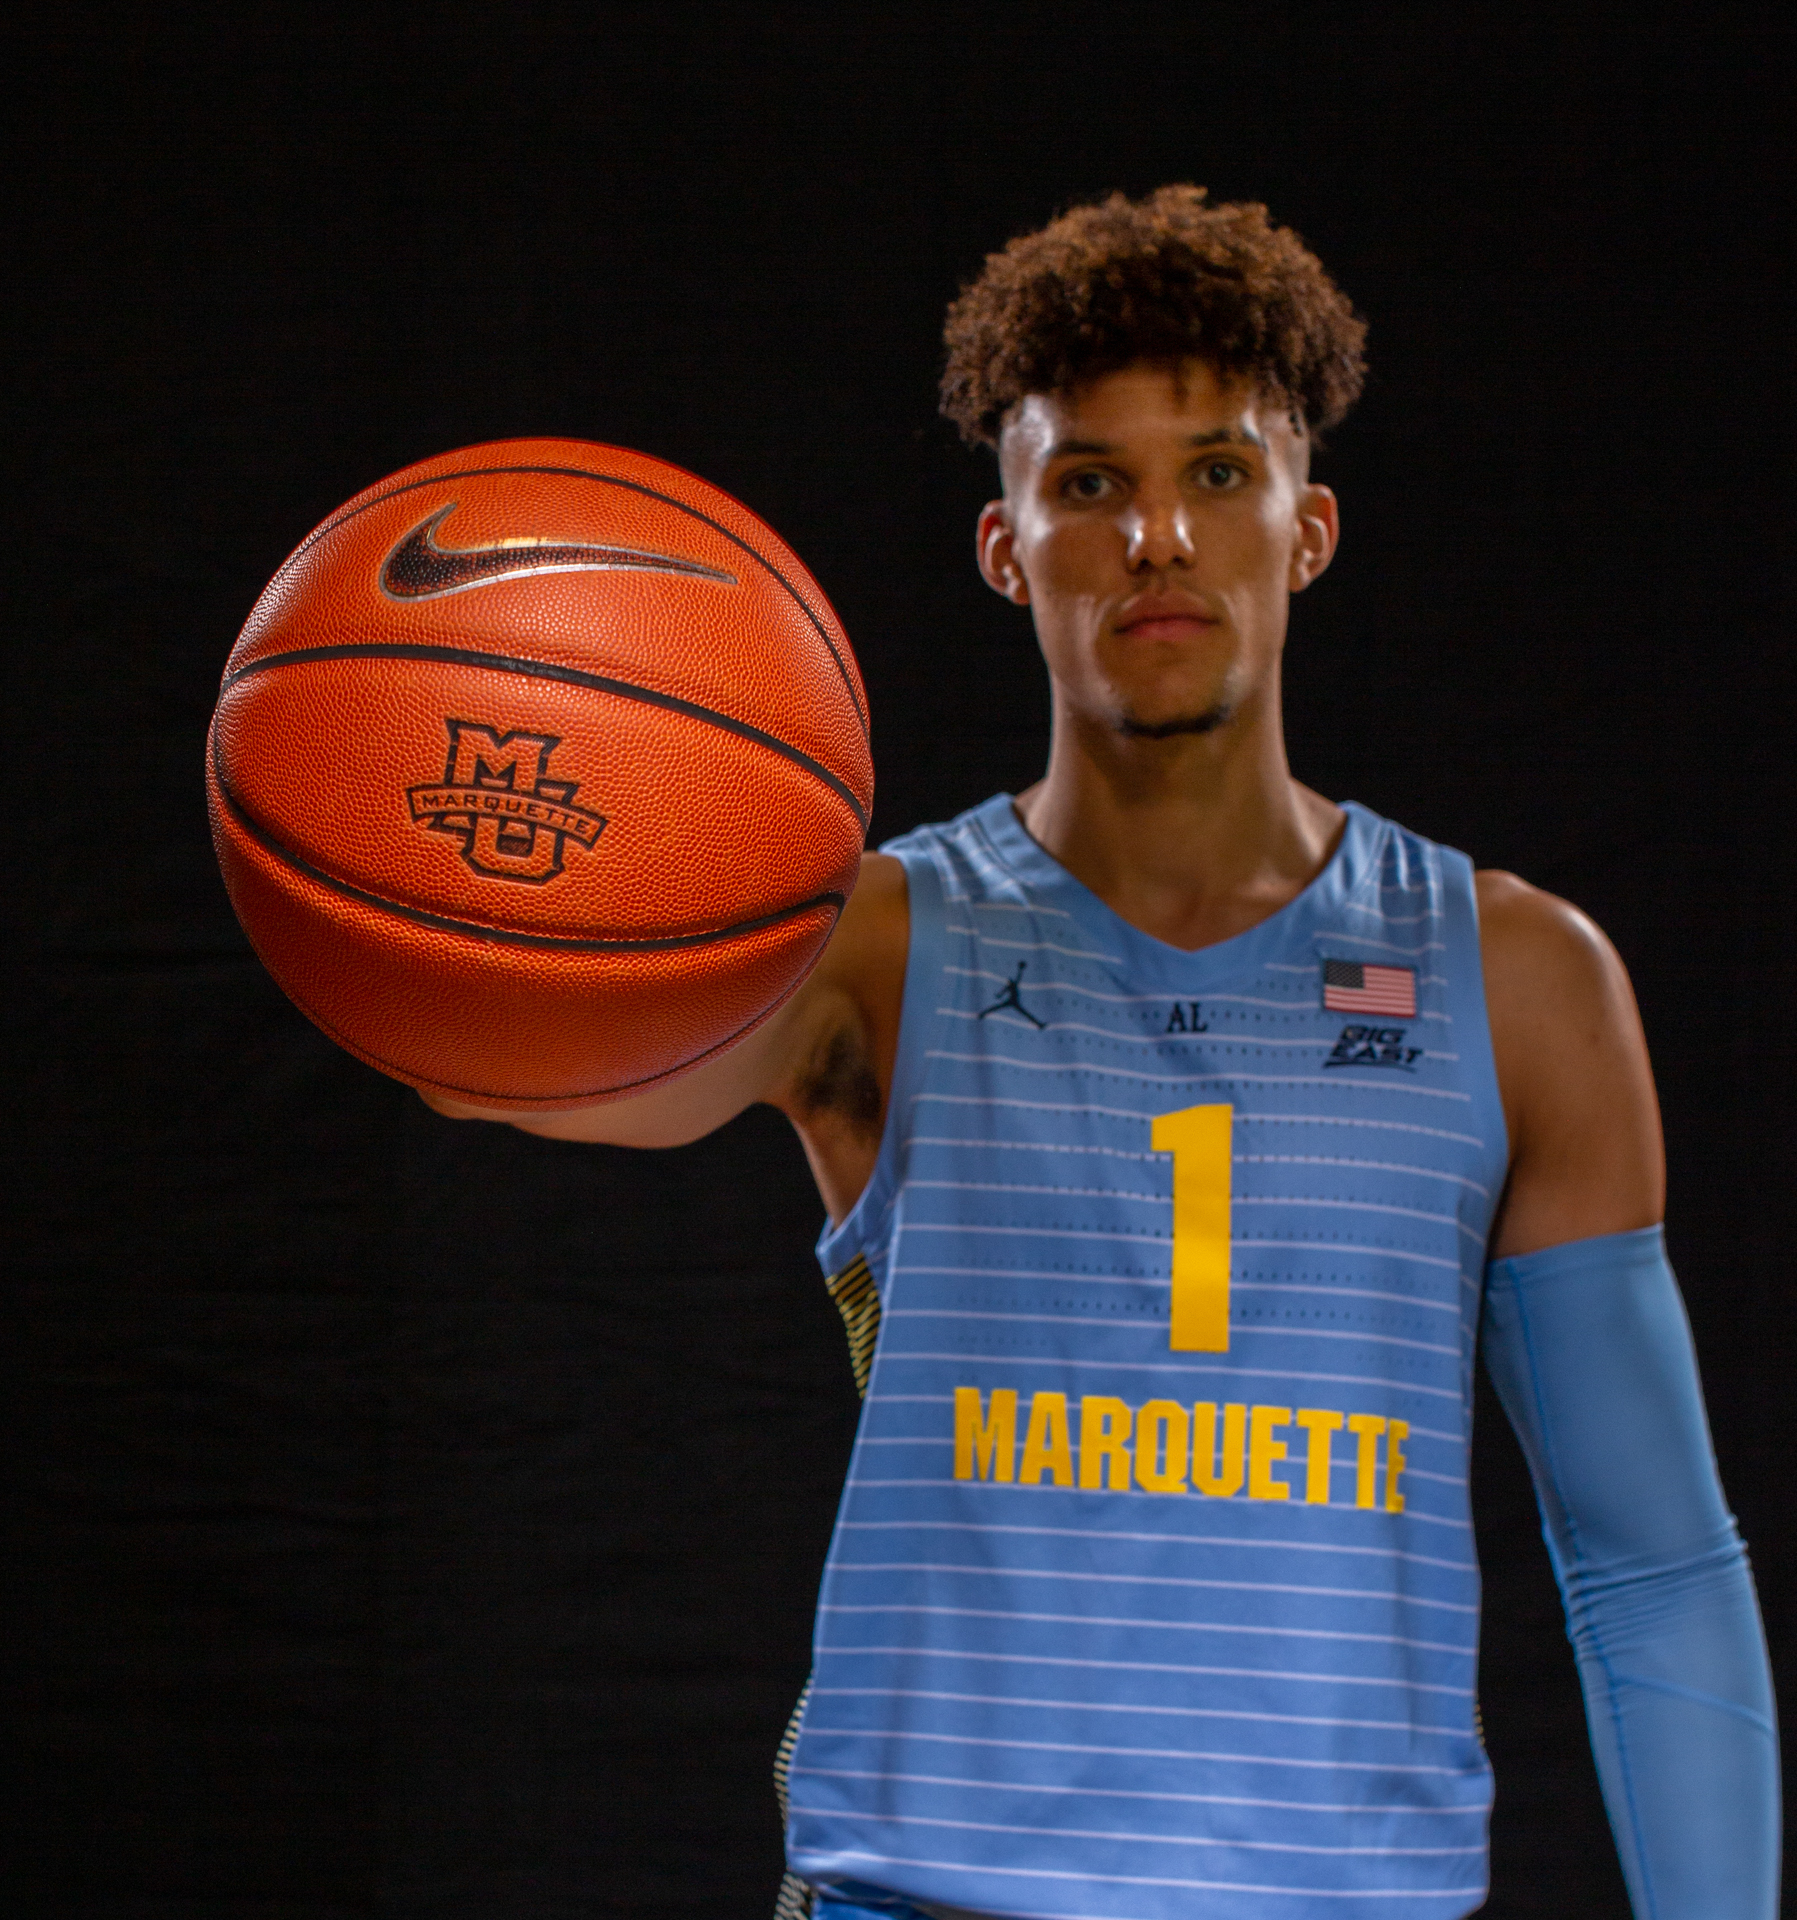 Brendan Bailey, the son of former NBA player Thurl Bailey, is entering his sophomore at Marquette. He served a mission in Washington D.C. from 2016-2018.